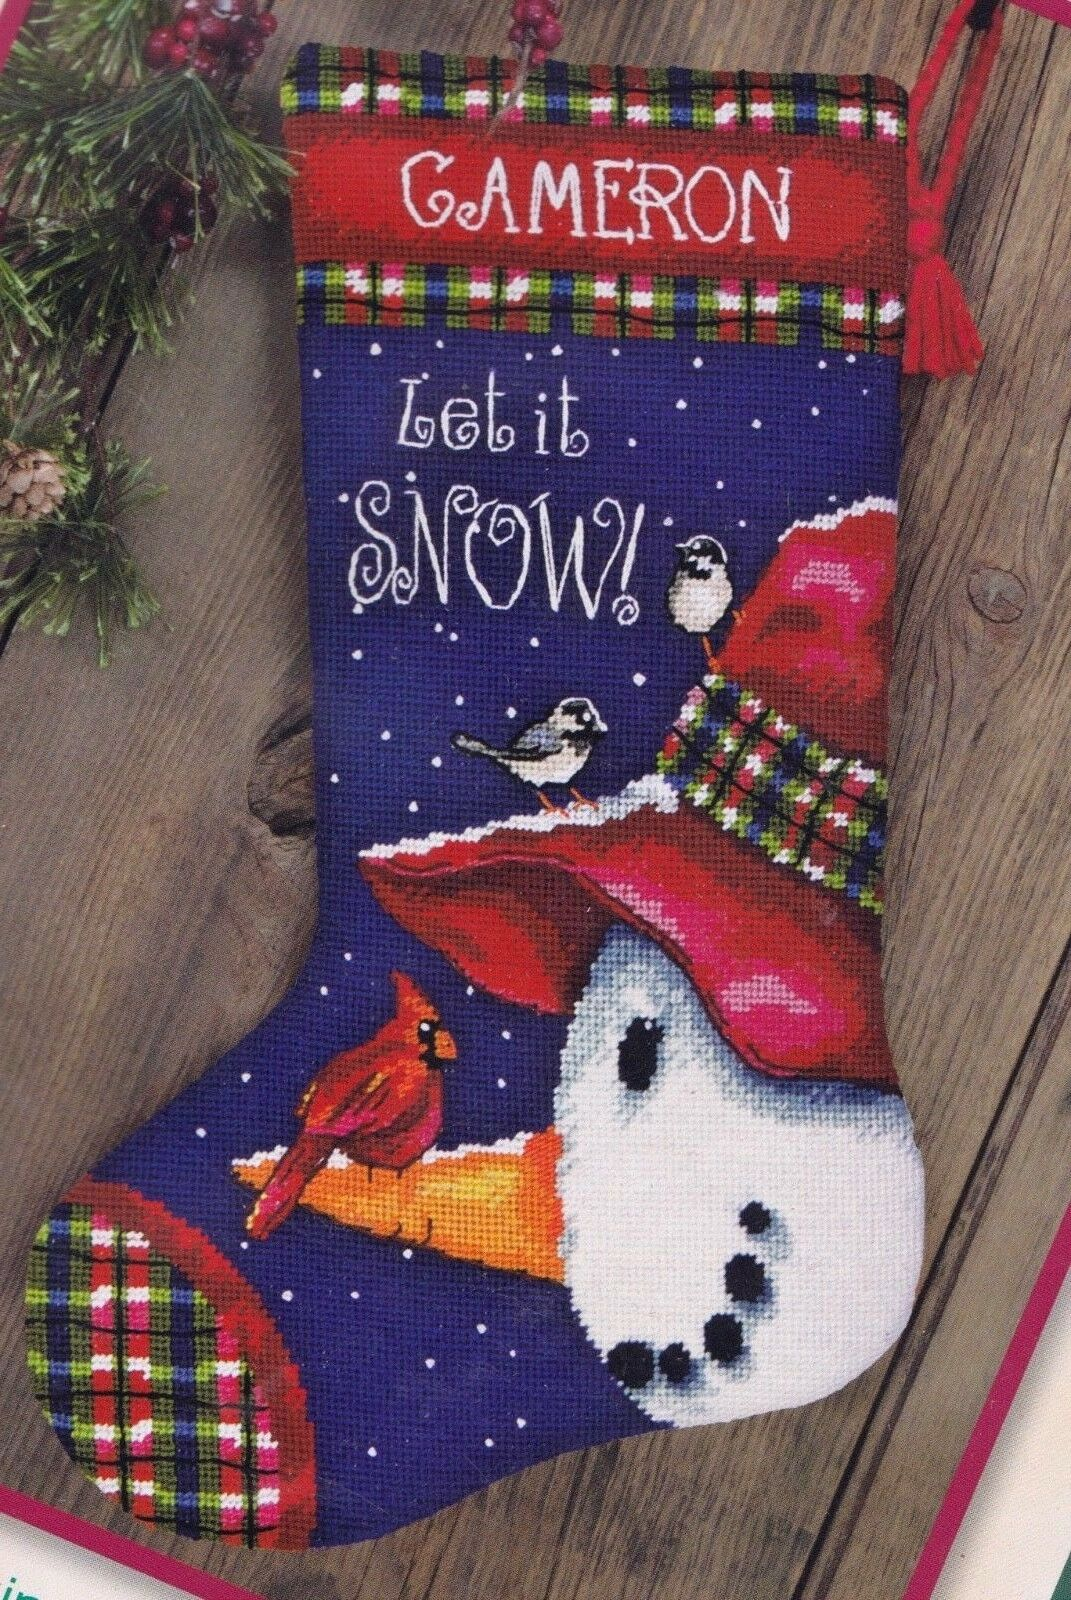 Dimensions Patterned Snowman Christmas Snow Yarn Needlepoint Stocking Kit 09155